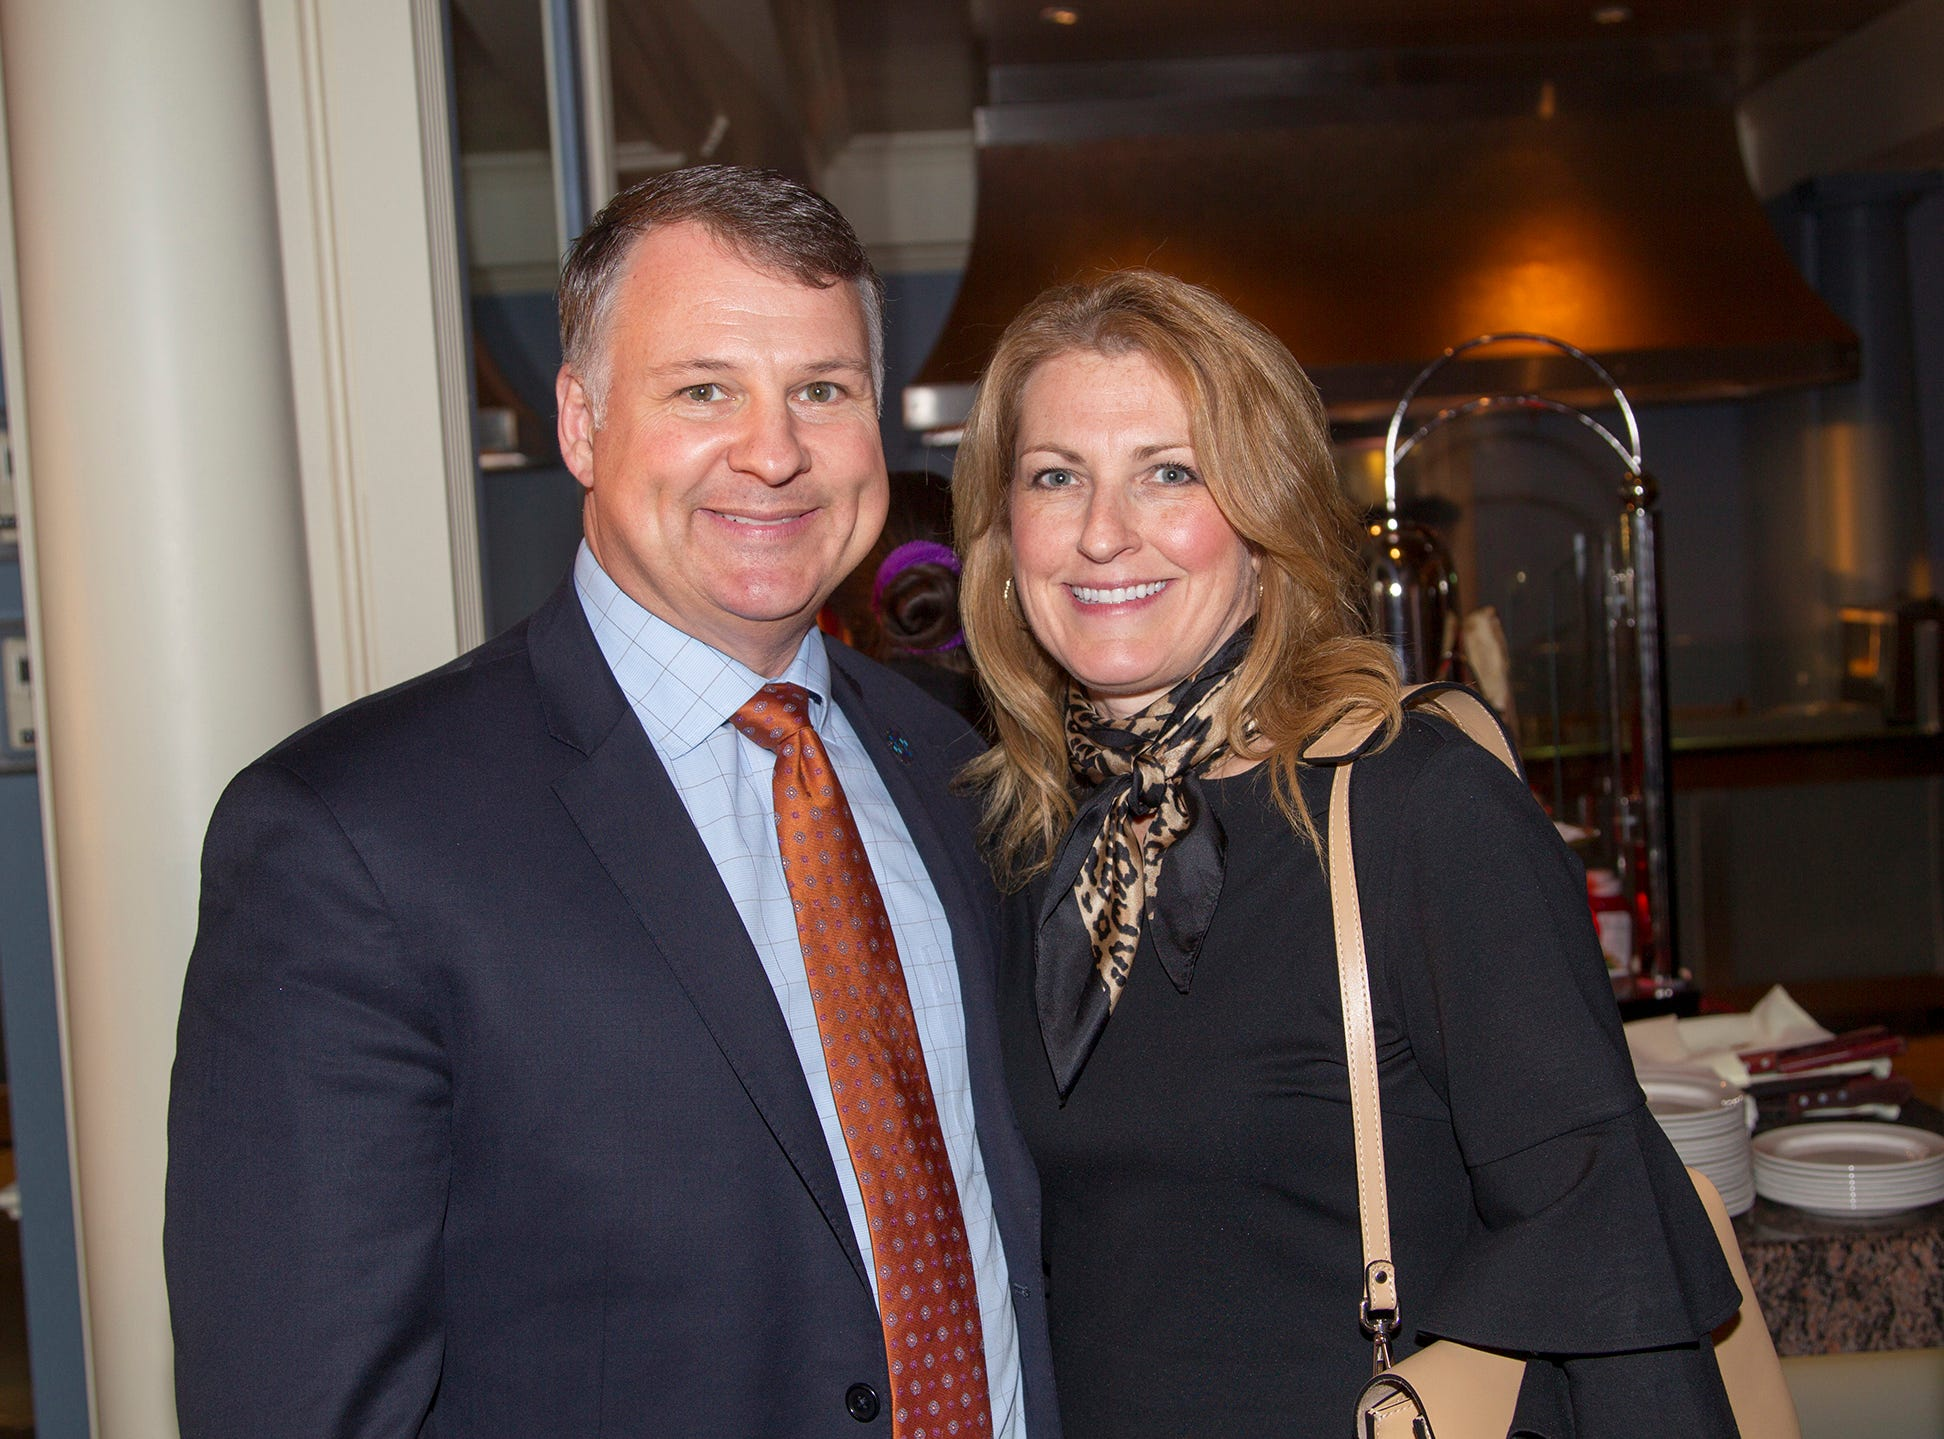 Mark and Colleen Sparta. Girl Scouts of Northern New Jersey held its Women of Achievement 2019 at Westmount Country Club in Woodland Park. 04/04/2019